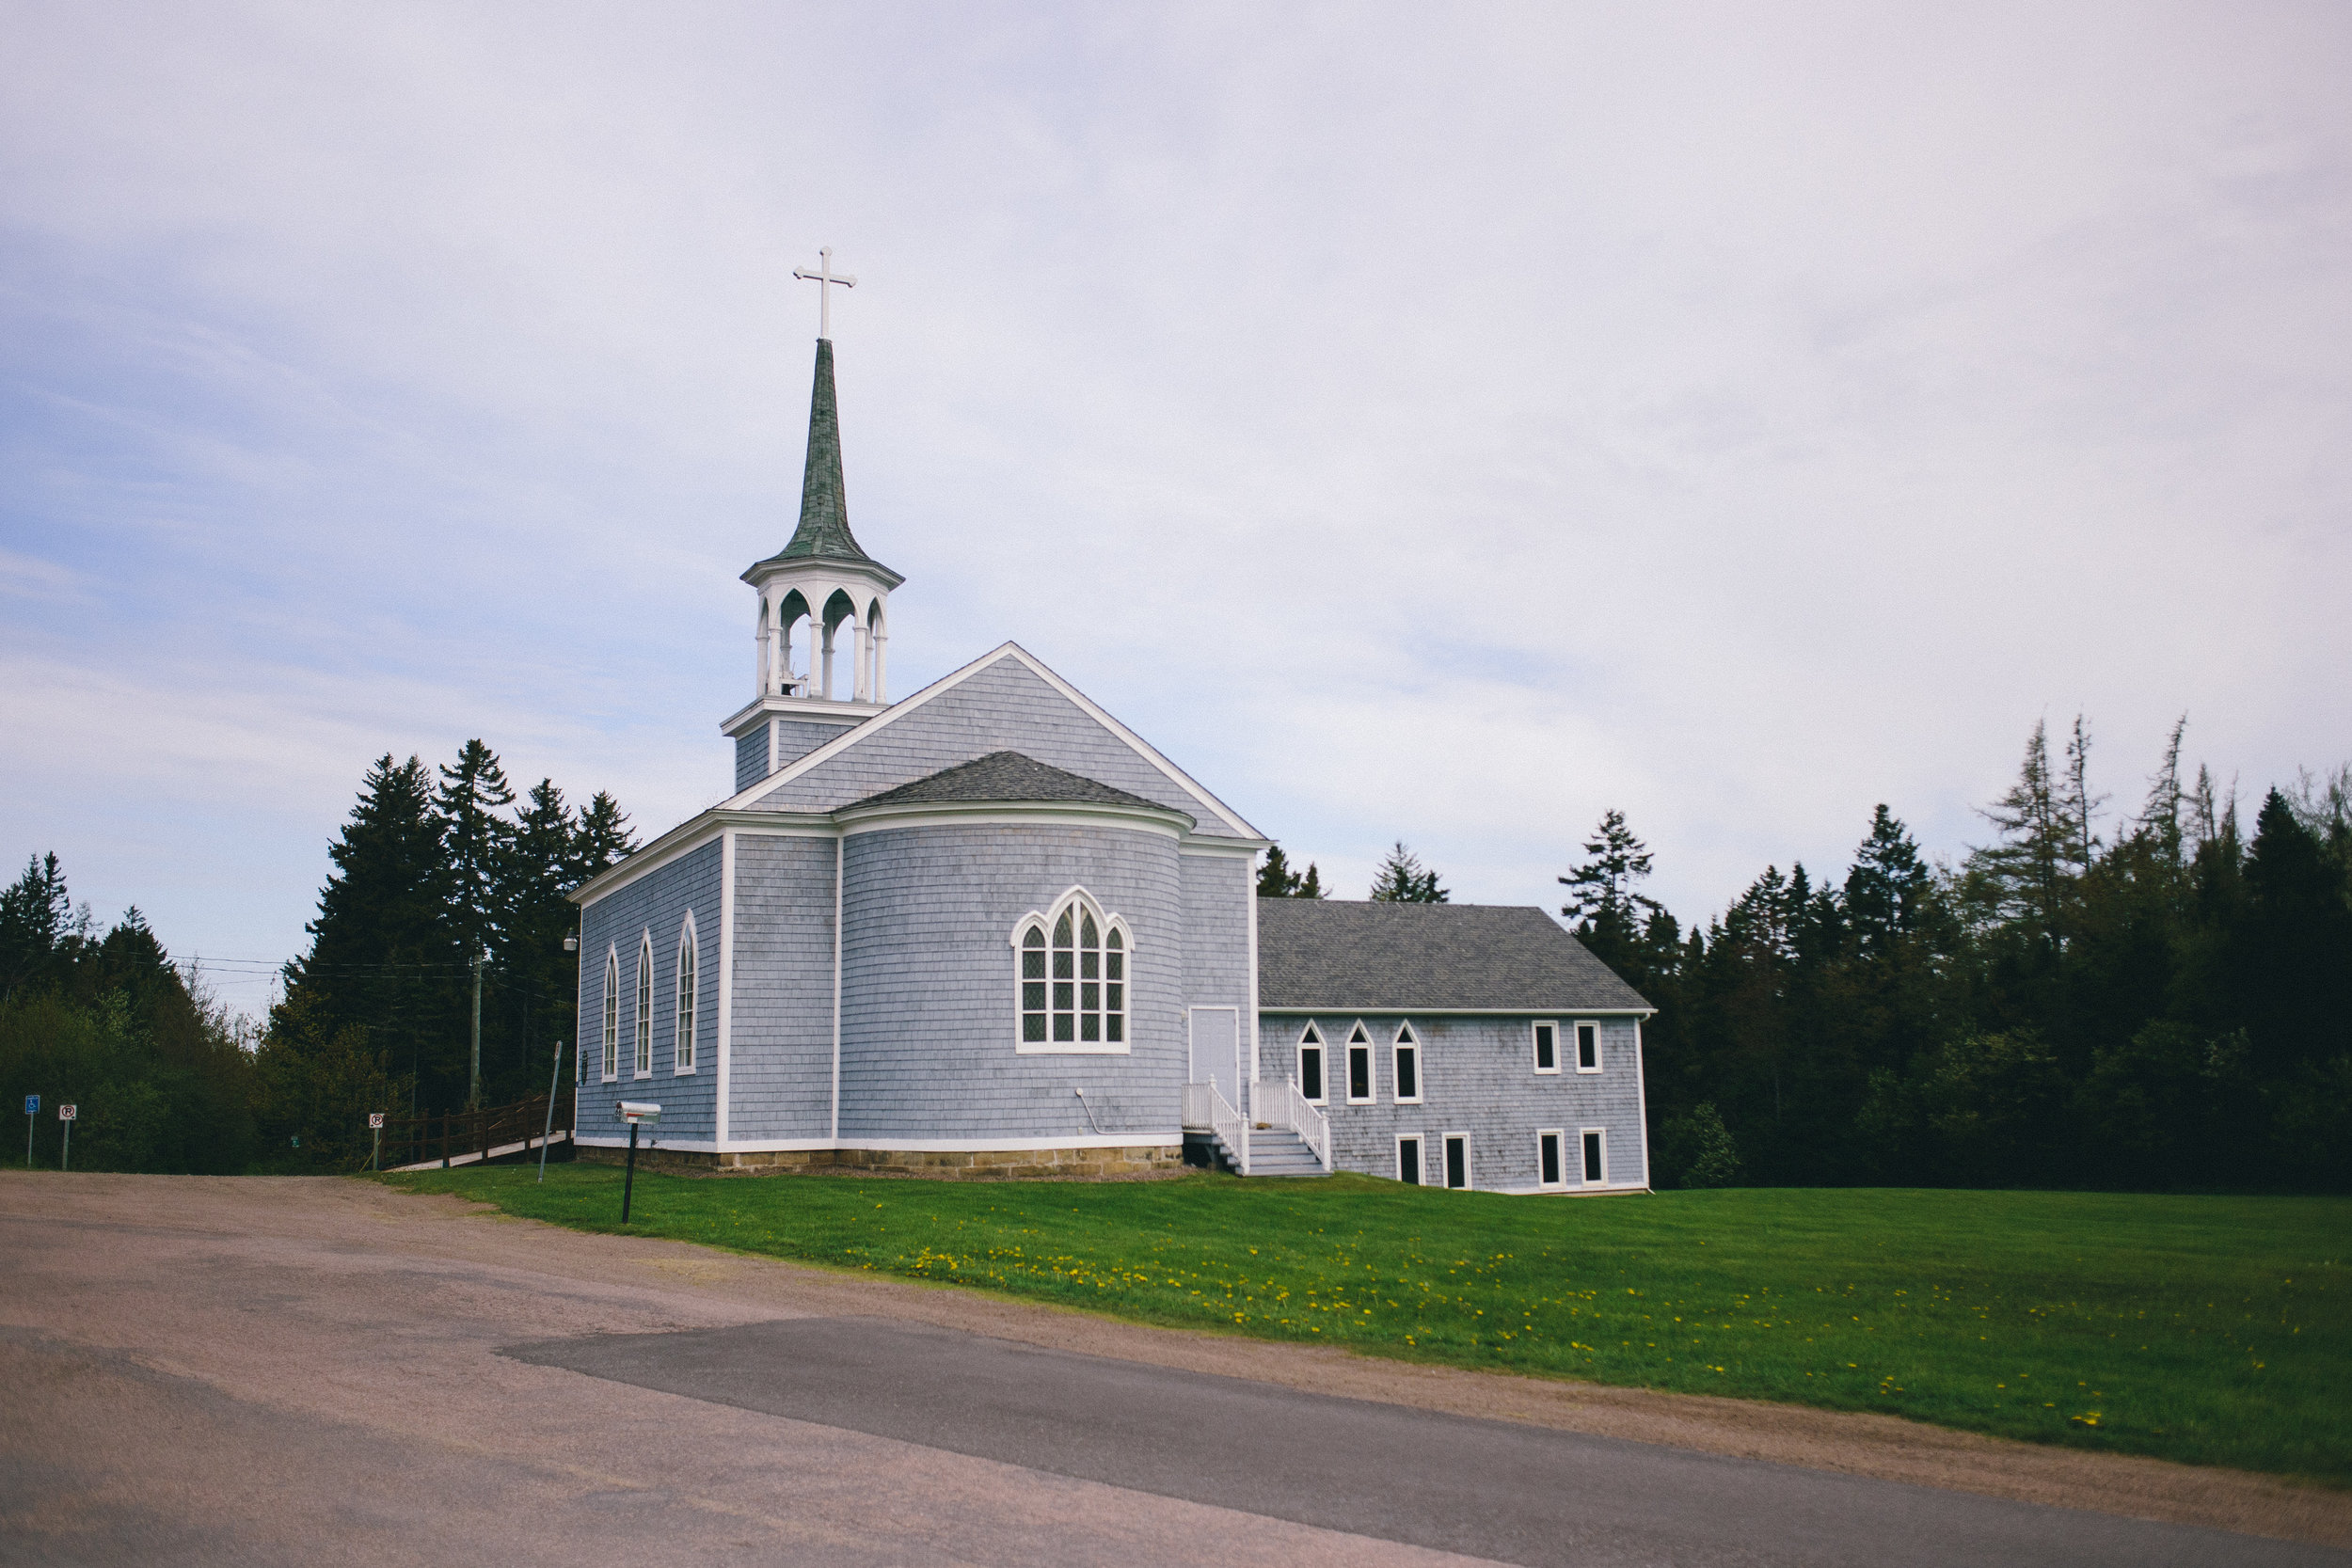 St. Ann's, Westcock - 65 British Settlement Road in Westcock, New Brunswick.Worship on Sunday mornings is at 9:30 a.m.